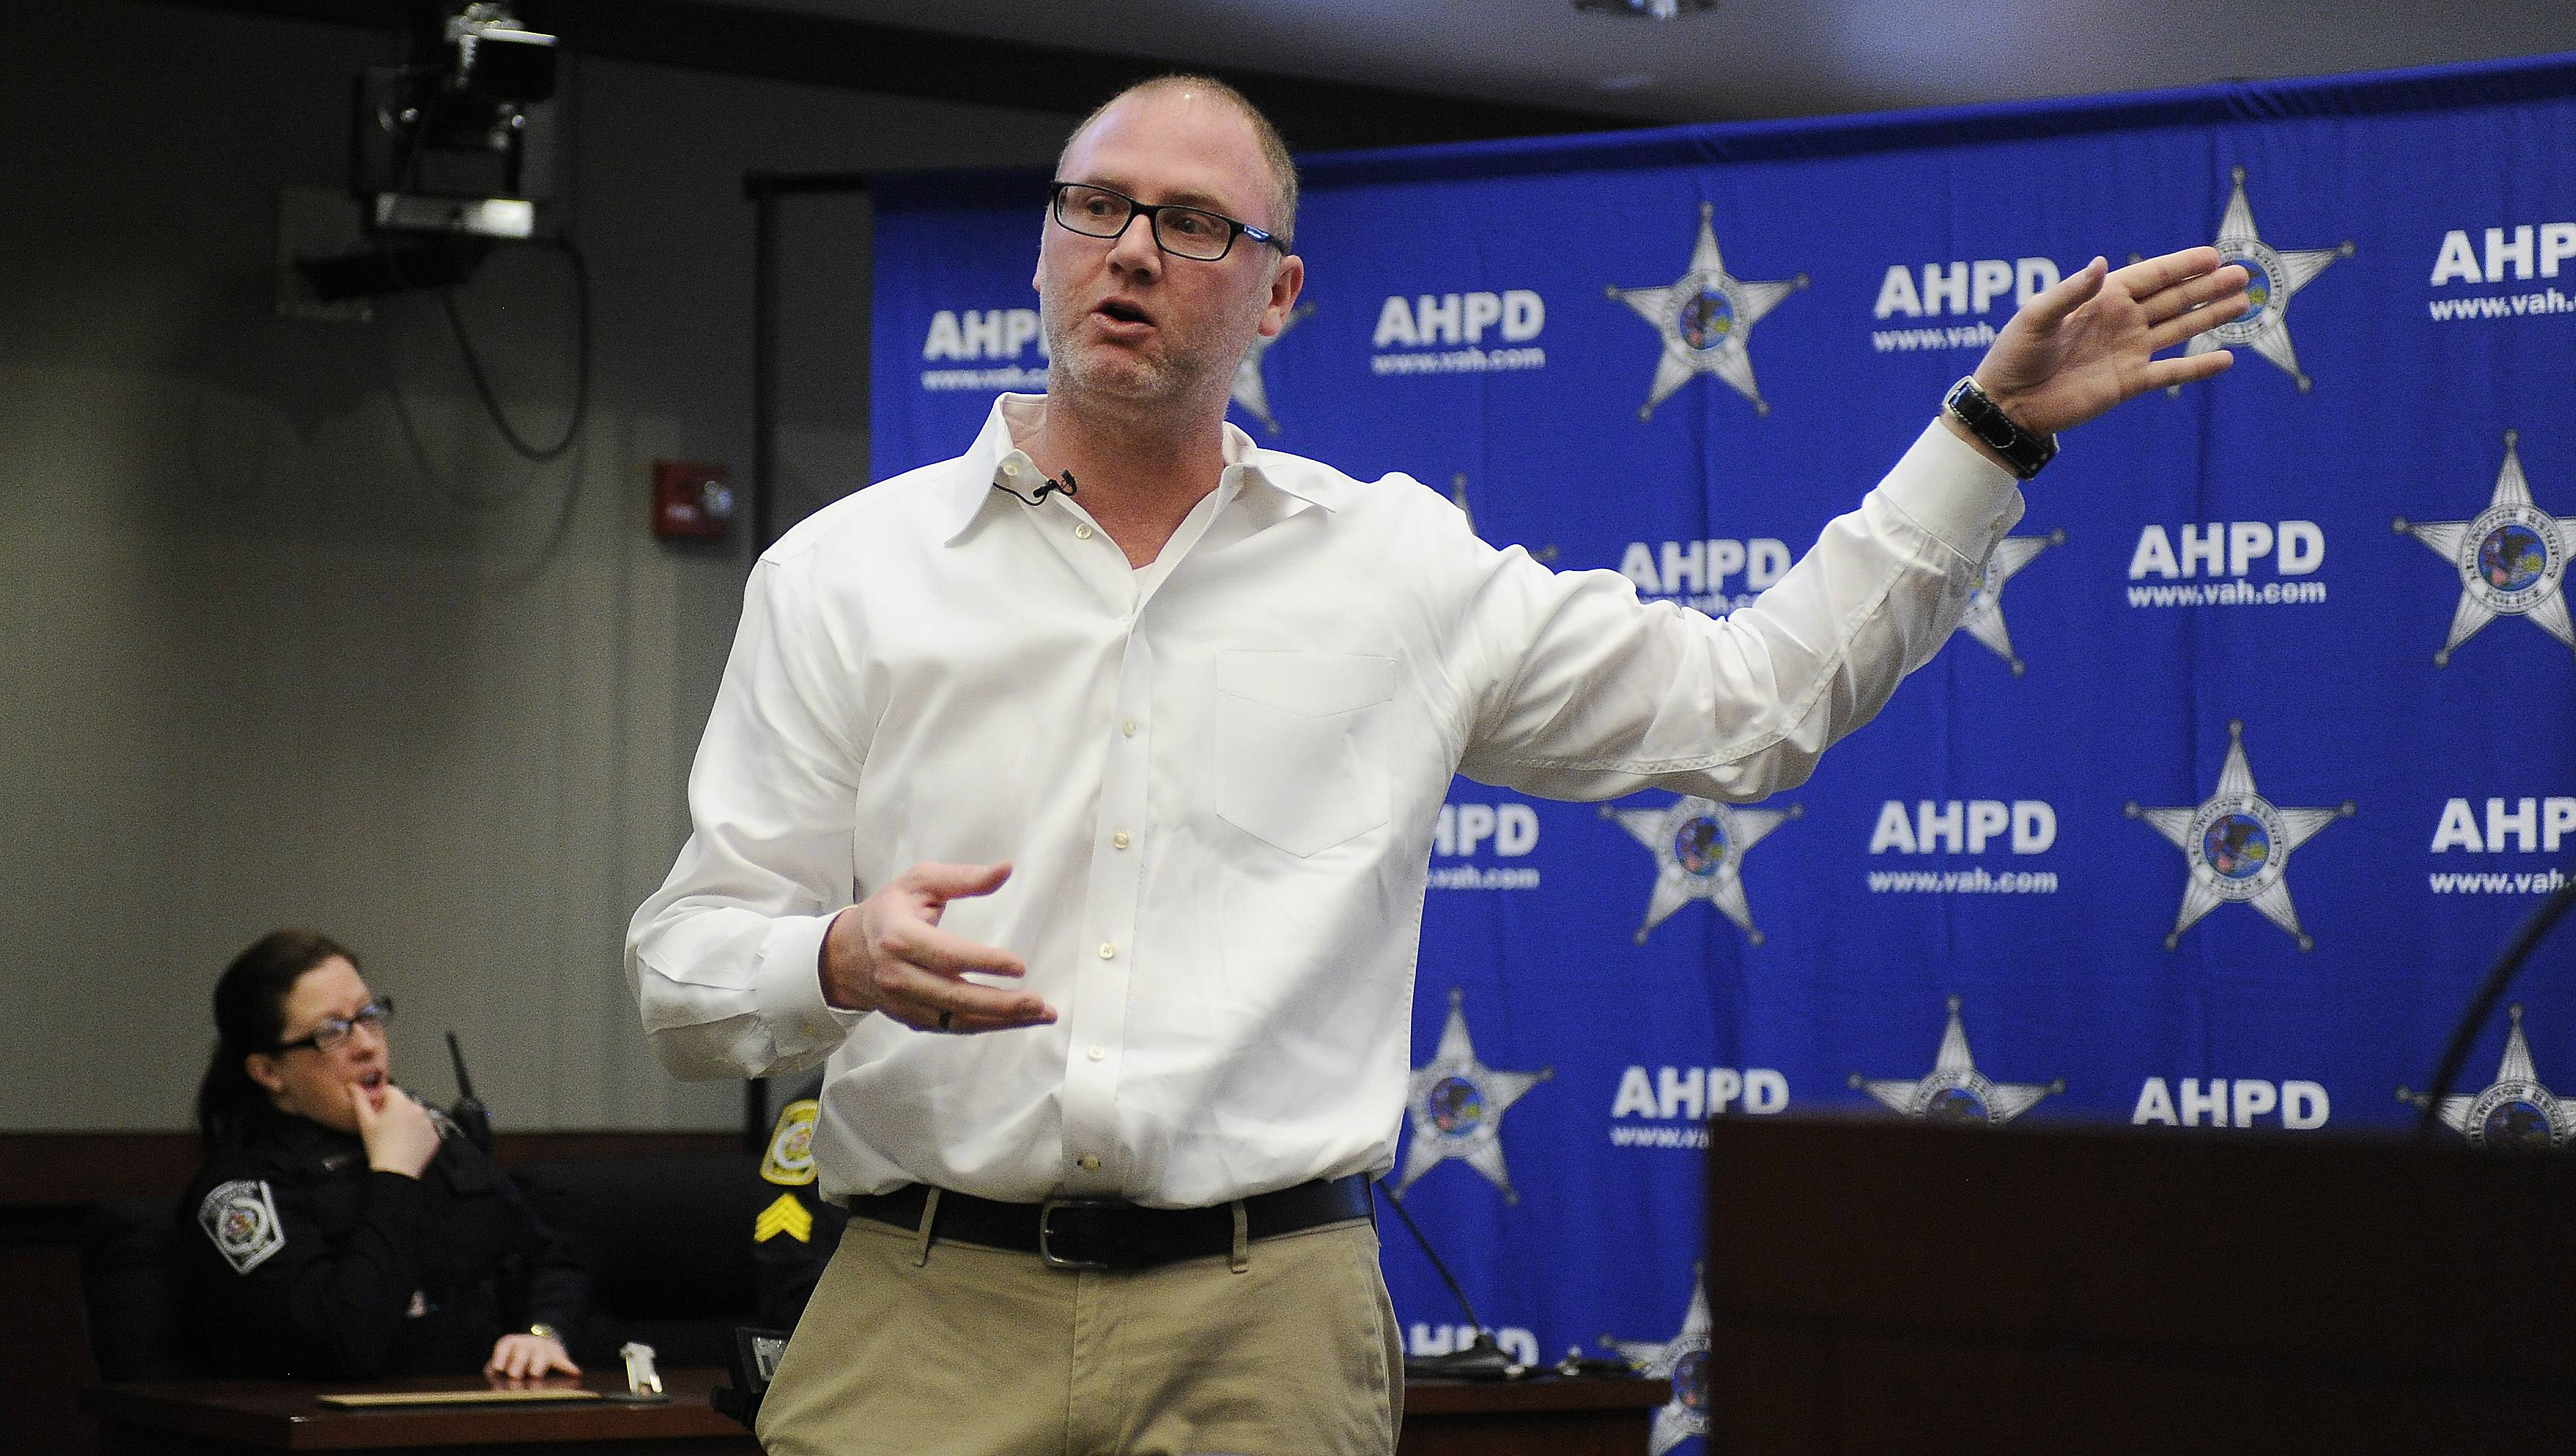 Arlington Hts. police: App partnership could lower crime